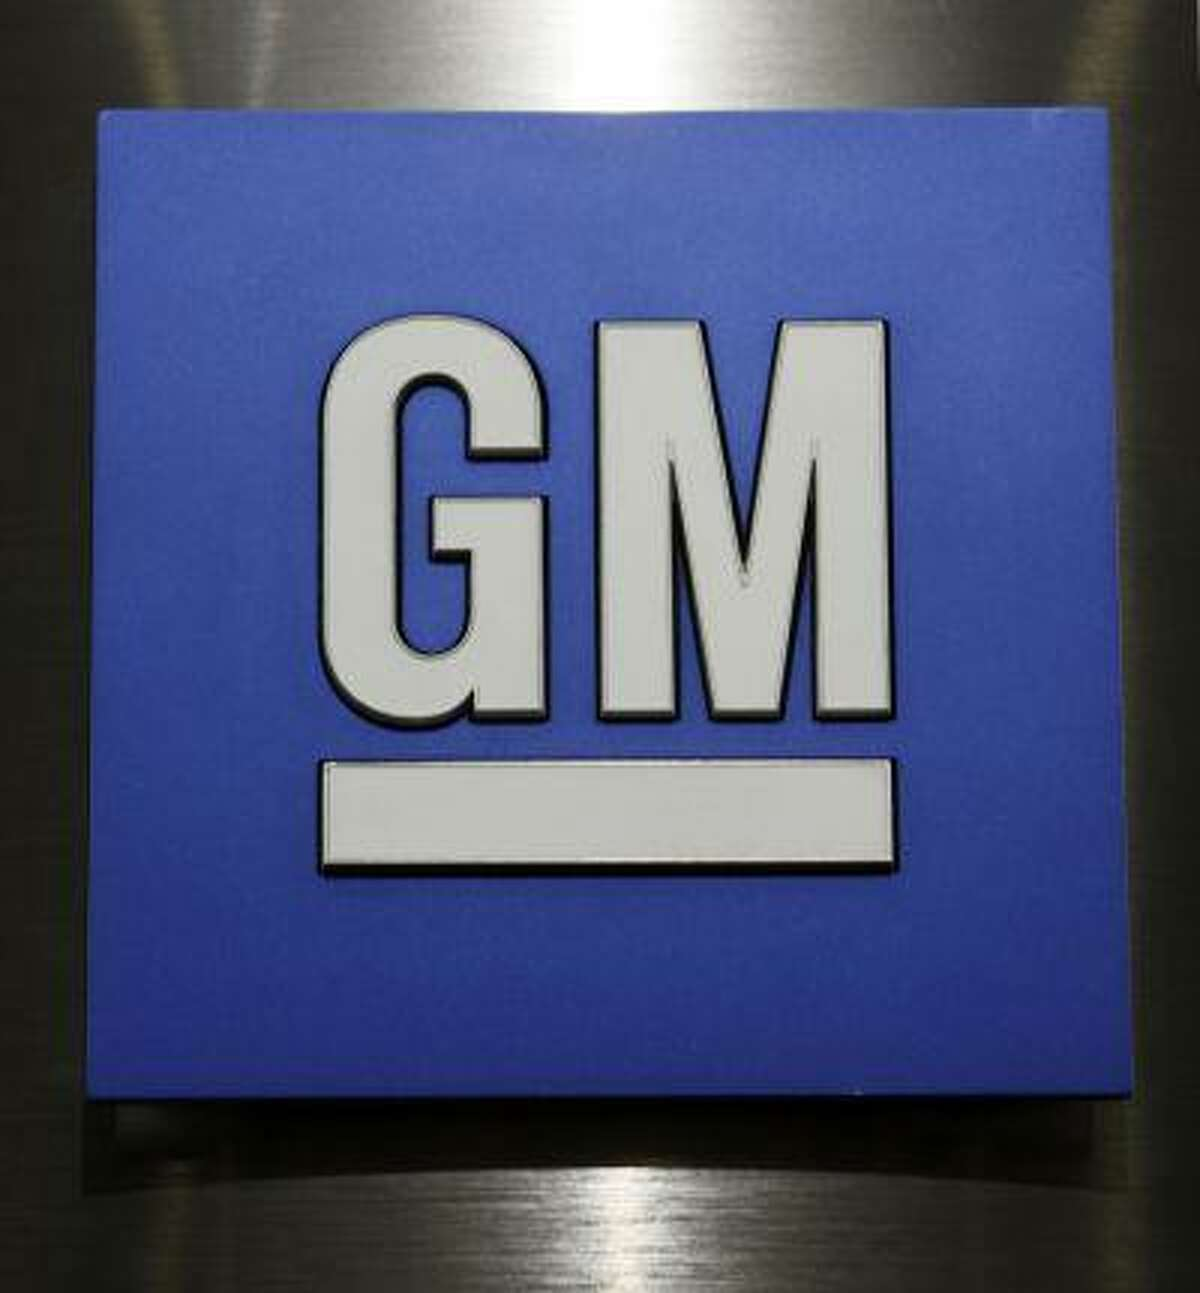 A General Motors logo is shown during a news conference in Detroit in 2010.